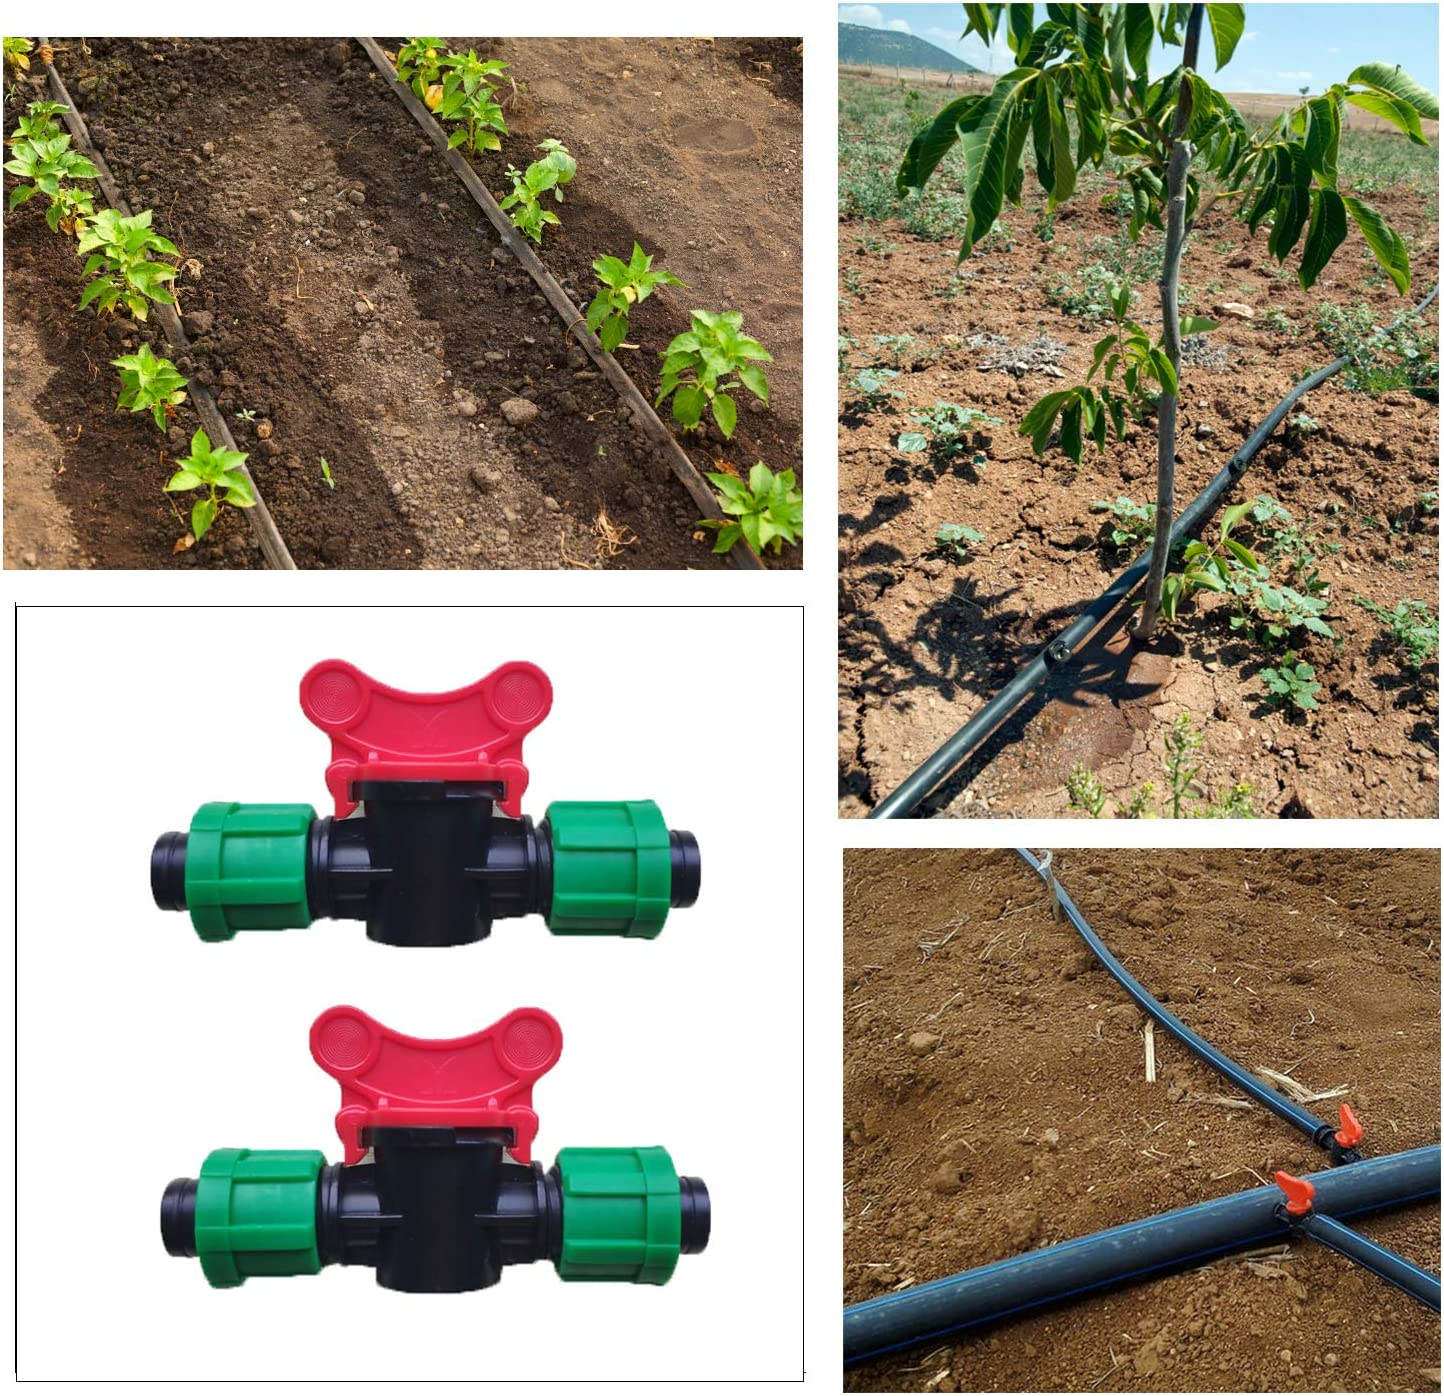 "QUECAOCF 8 Pieces 1/2"" Universal Shut Off Valve Drip Irrigation Tubing, Compatible with 16-17mm Drip Tape Tubing Sprinkler System : Garden & Outdoor"